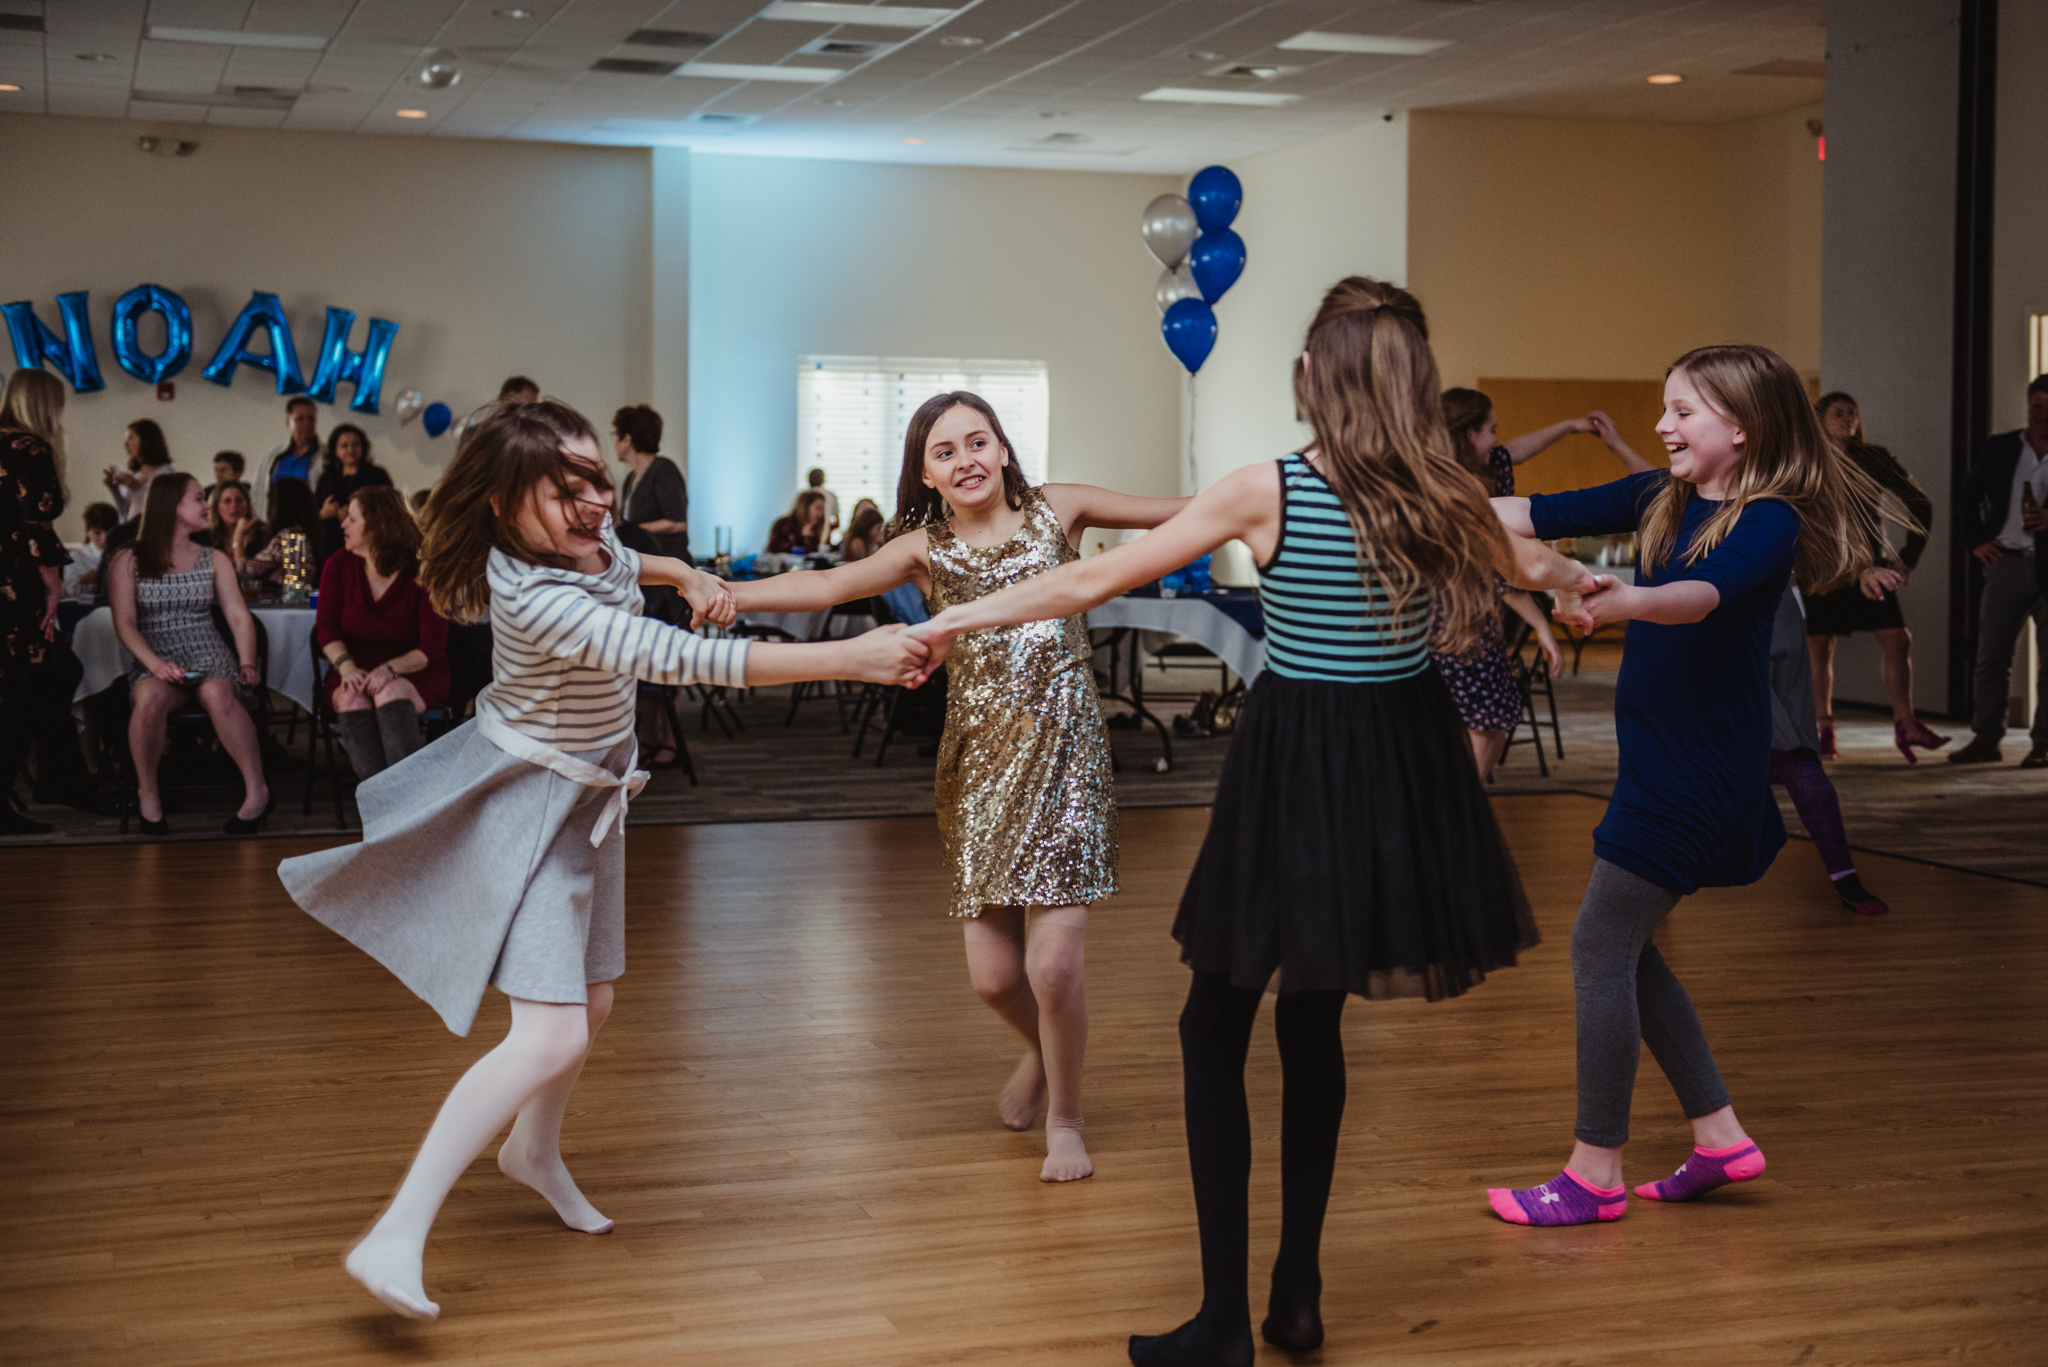 Girls dance together in a circle during the bar mitzvah reception at Temple Beth Or in Raleigh.